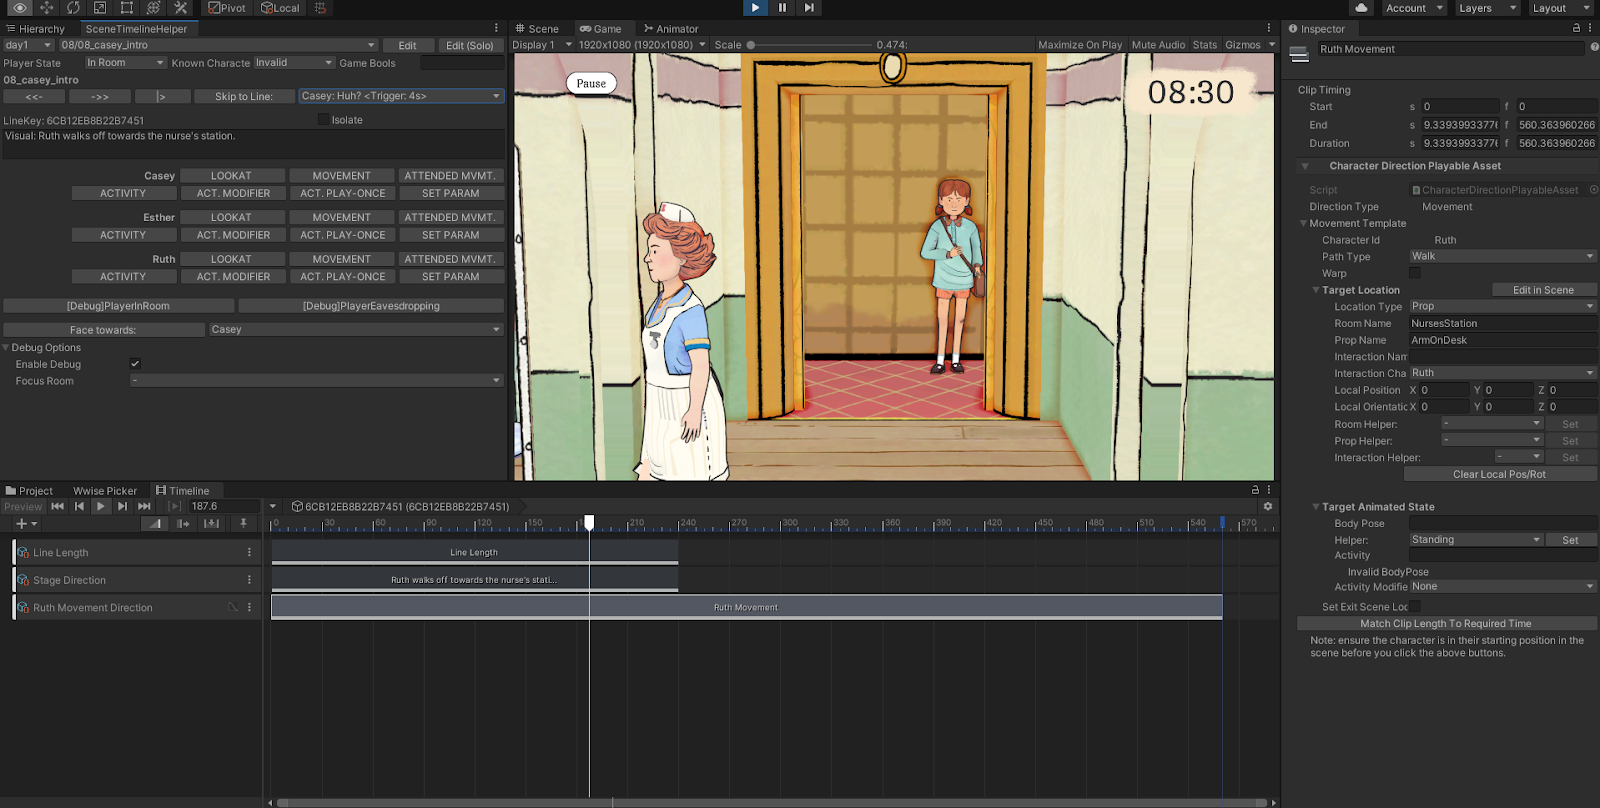 """A screenshot displaying the Unity editor, with the Timeline window at the bottom, open as previously described, plus a 'Scene Timeline Helper' window on the left, which allows the user to skip forwards or backwards in the scene, and has many buttons to quickly add clips to the Timeline. On the right is a Property Inspector which is inspecting the currently selected clip, a """"Character Direction"""" clip, which is set up to move the character Ruth to the Nurse's Station. In the Game view in the middle, we can see a character - Ruth - partway through a movement."""